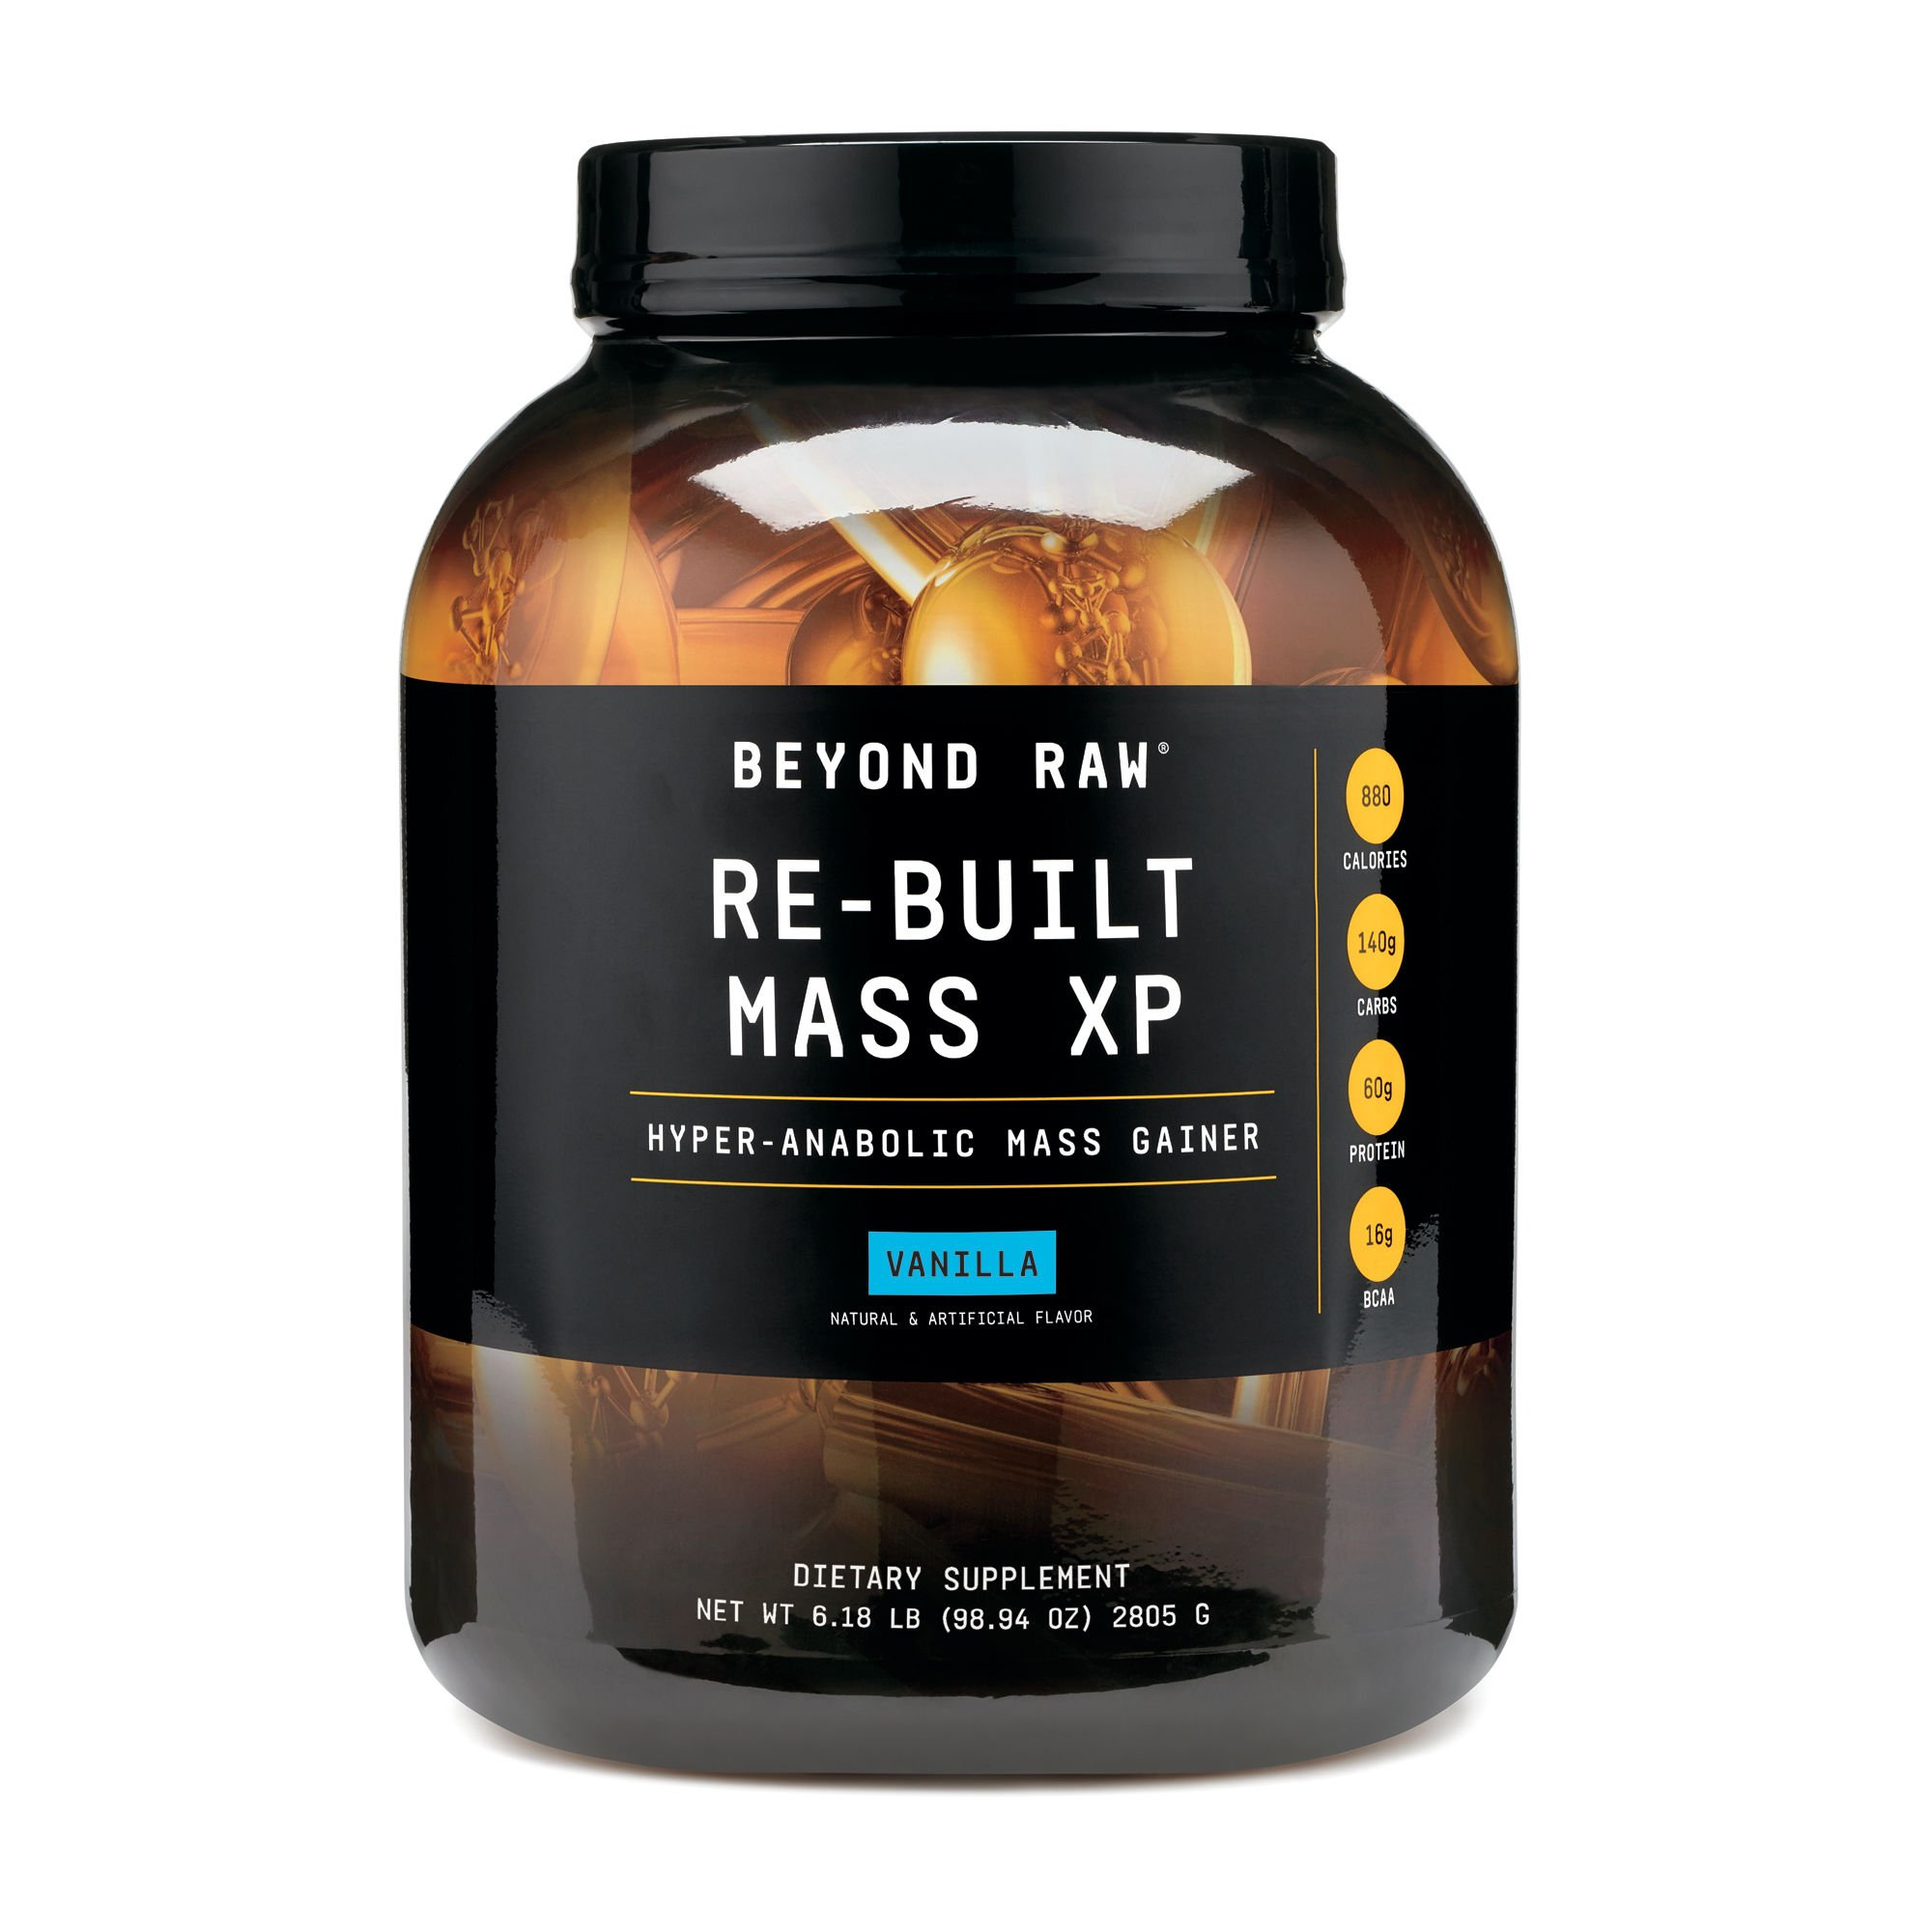 Beyond Raw Re-Built Mass XP Vanilla, 6 lbs, Contains 880 Calories, 140g Carbohydrates and 60g Protein Per Serving by BEYOND RAW (Image #1)